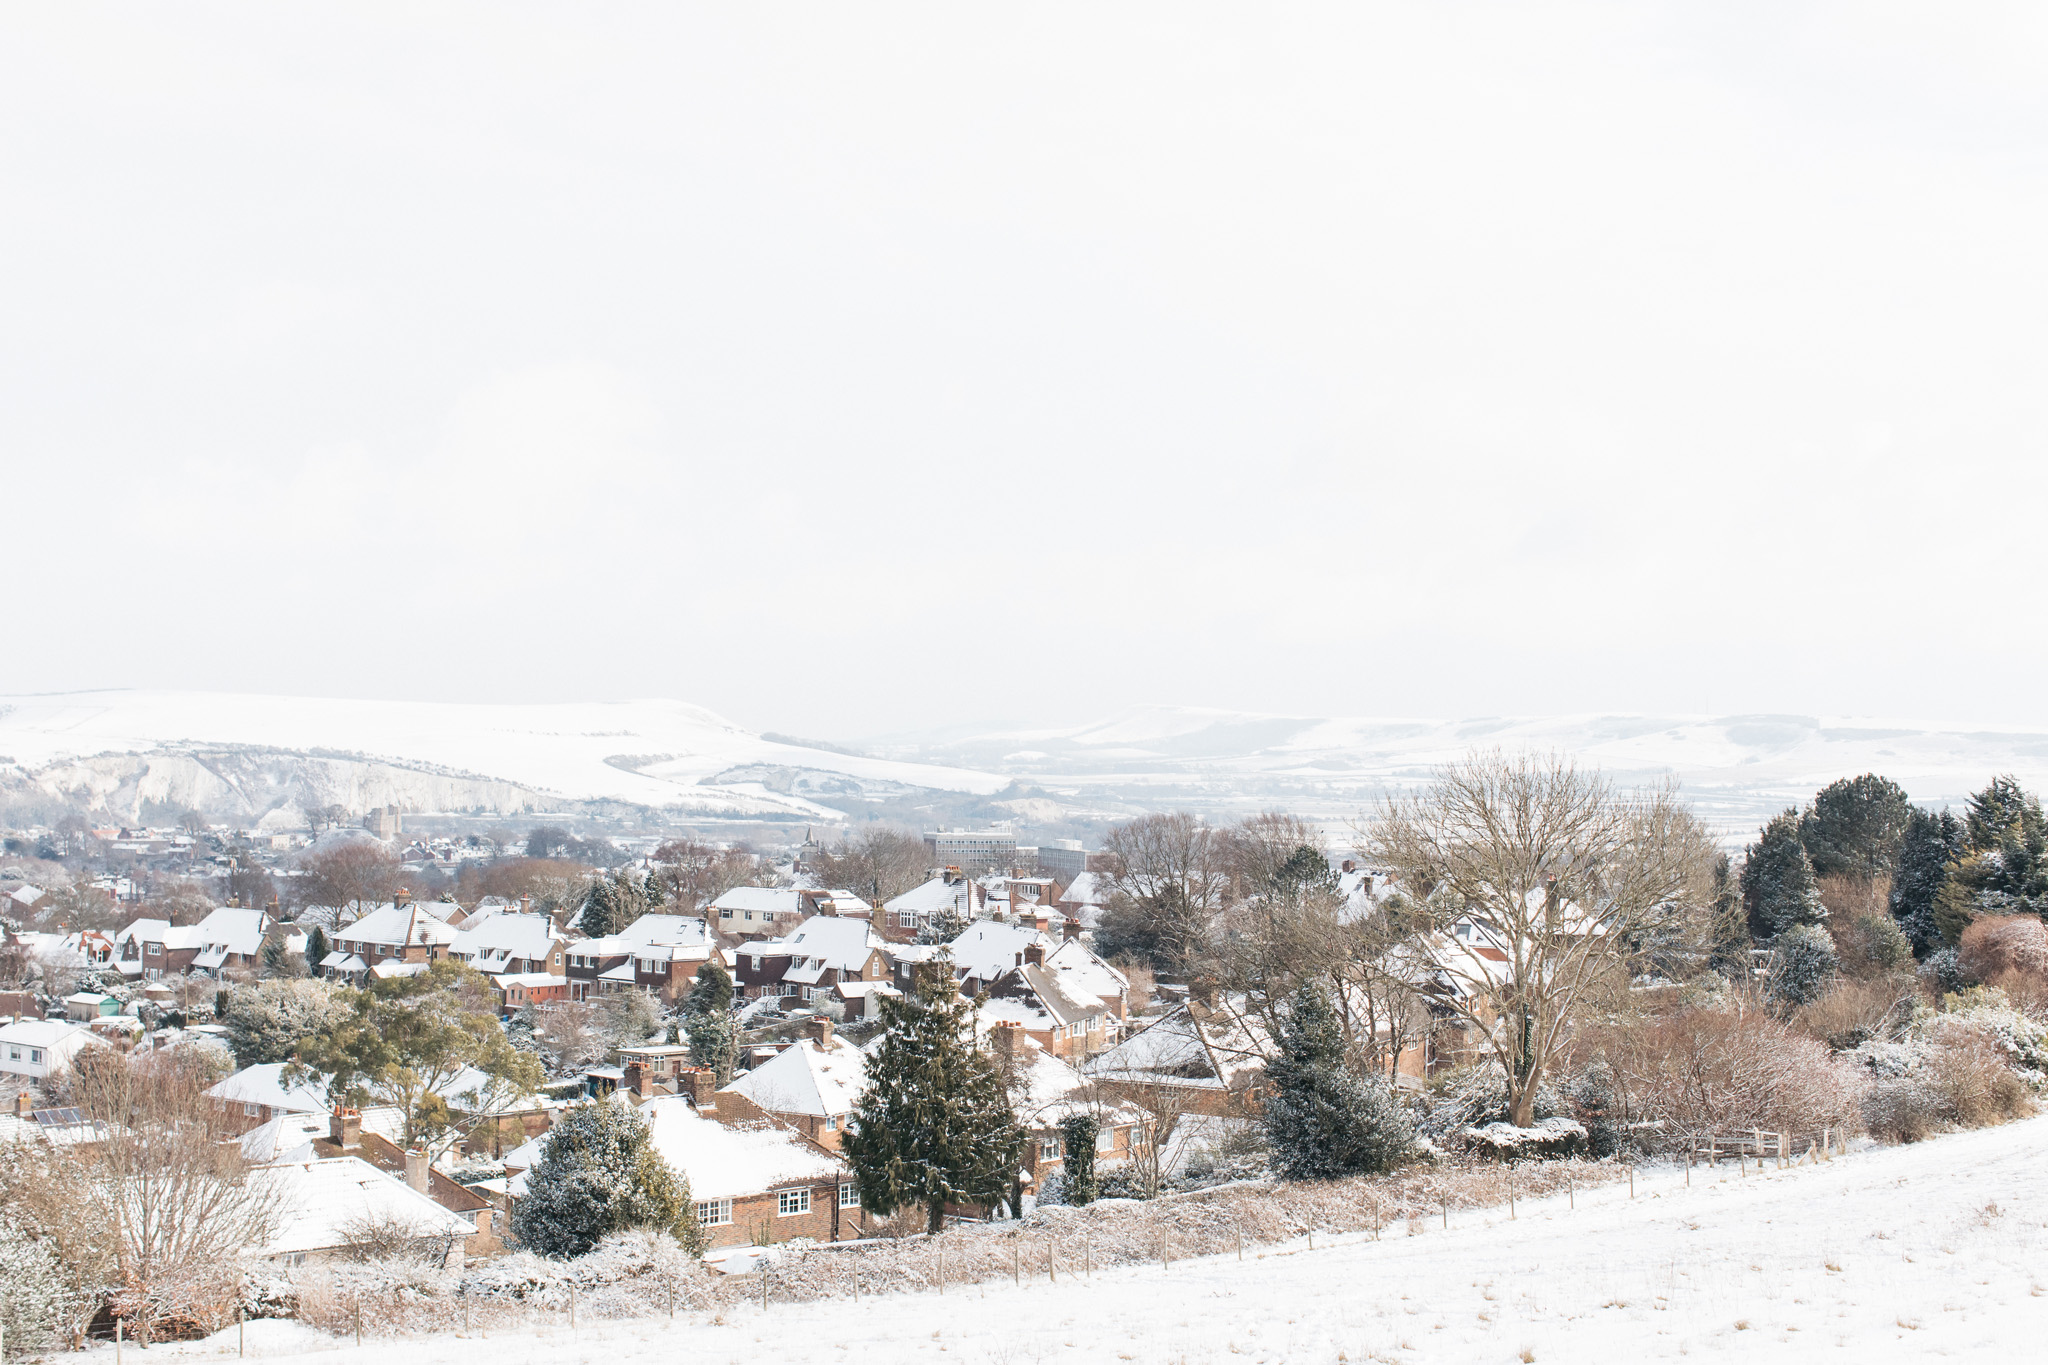 Photographs of the UK snow in Feb March 2018 - taken in the market town of Lewes, East Sussex with some looking over the rooftops of the town.